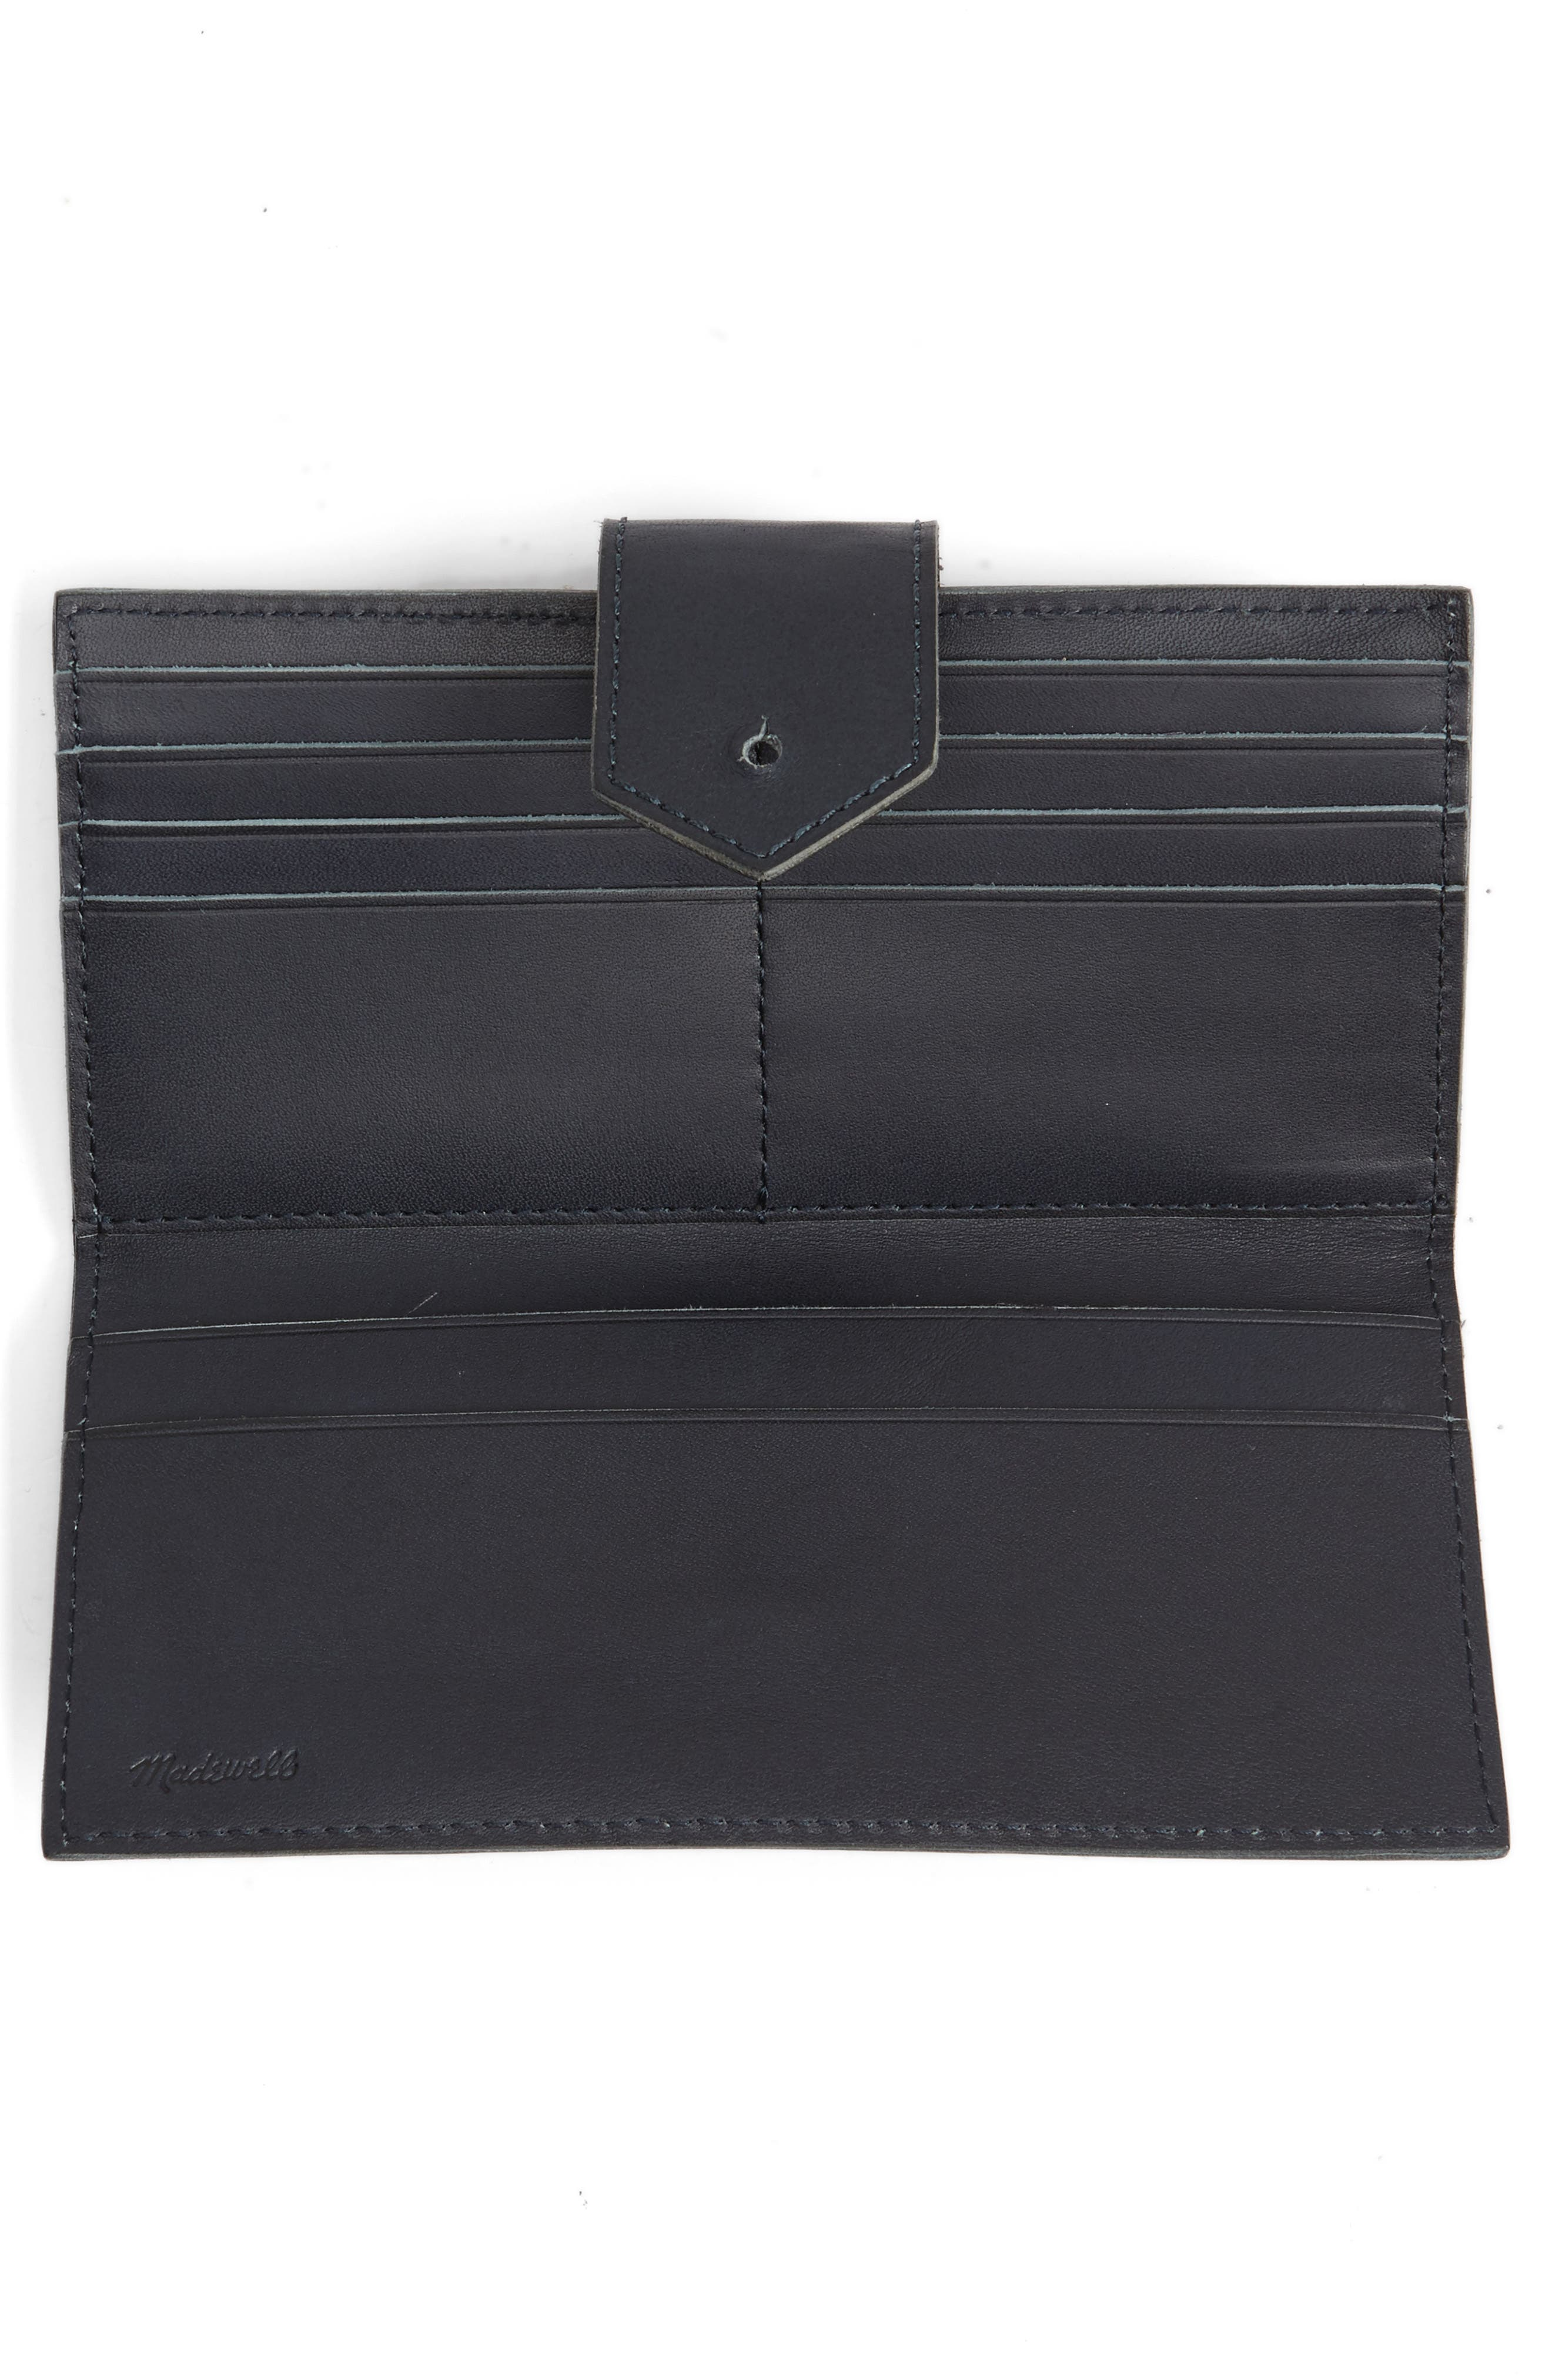 Alternate Image 3  - Madewell The Post Leather Wallet